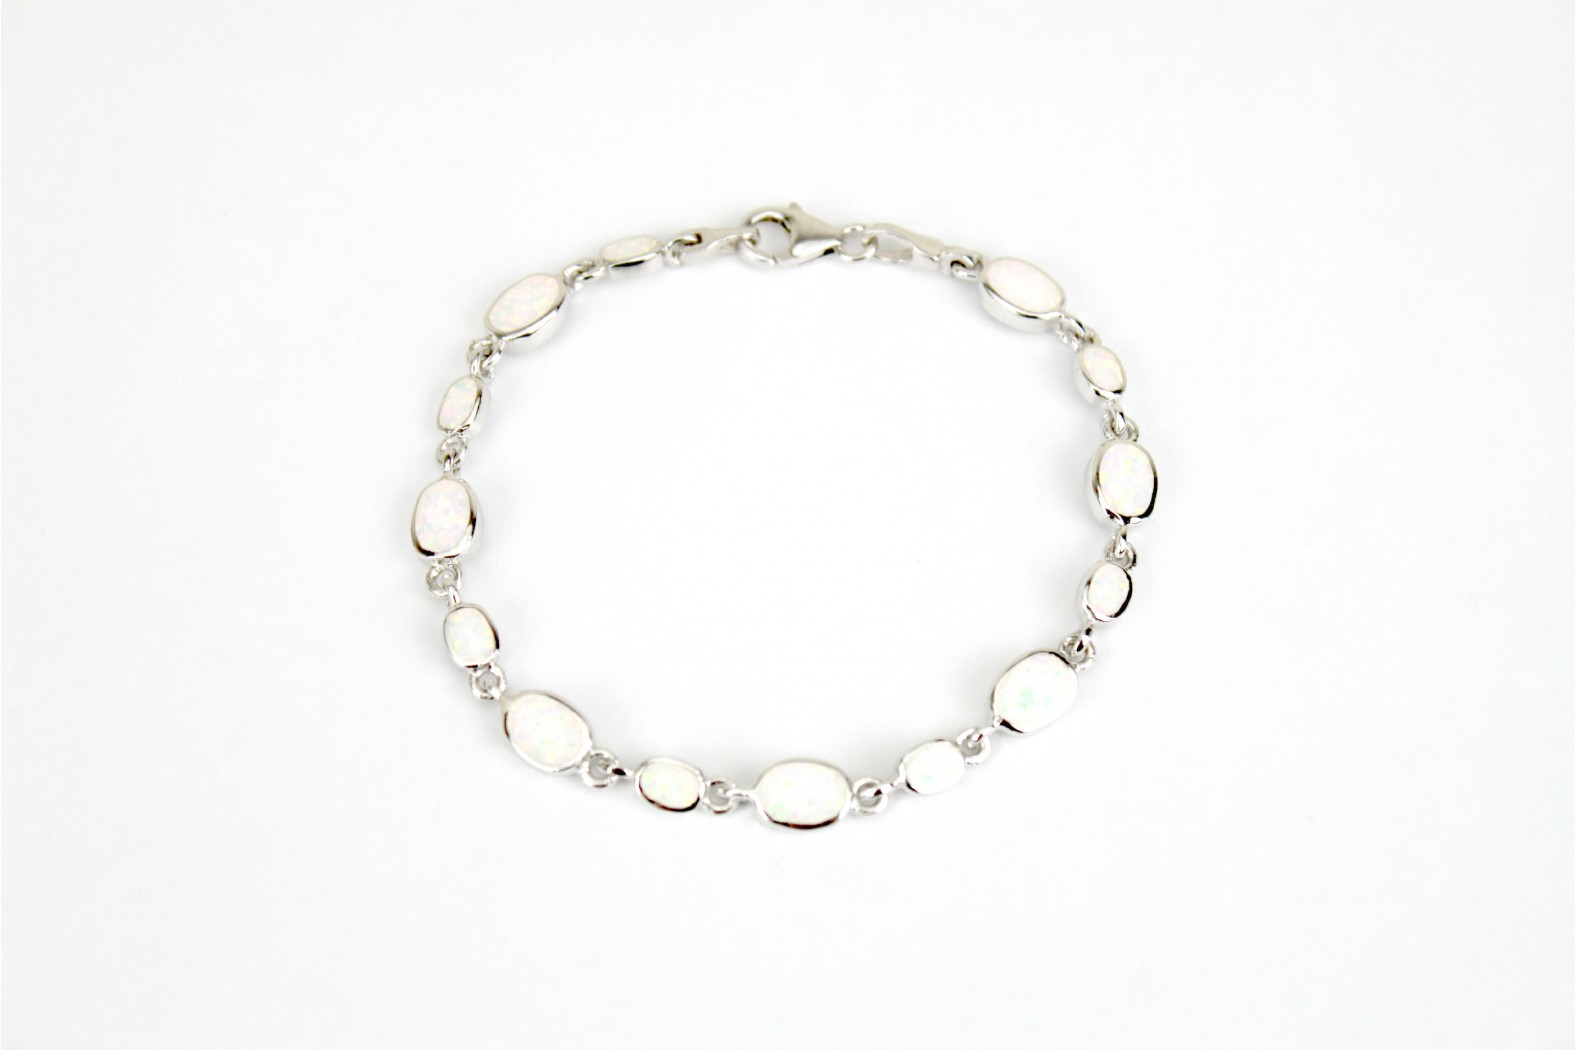 White Opal Fire silver set claw clasp Bracelet 14 created stones medium and small oval